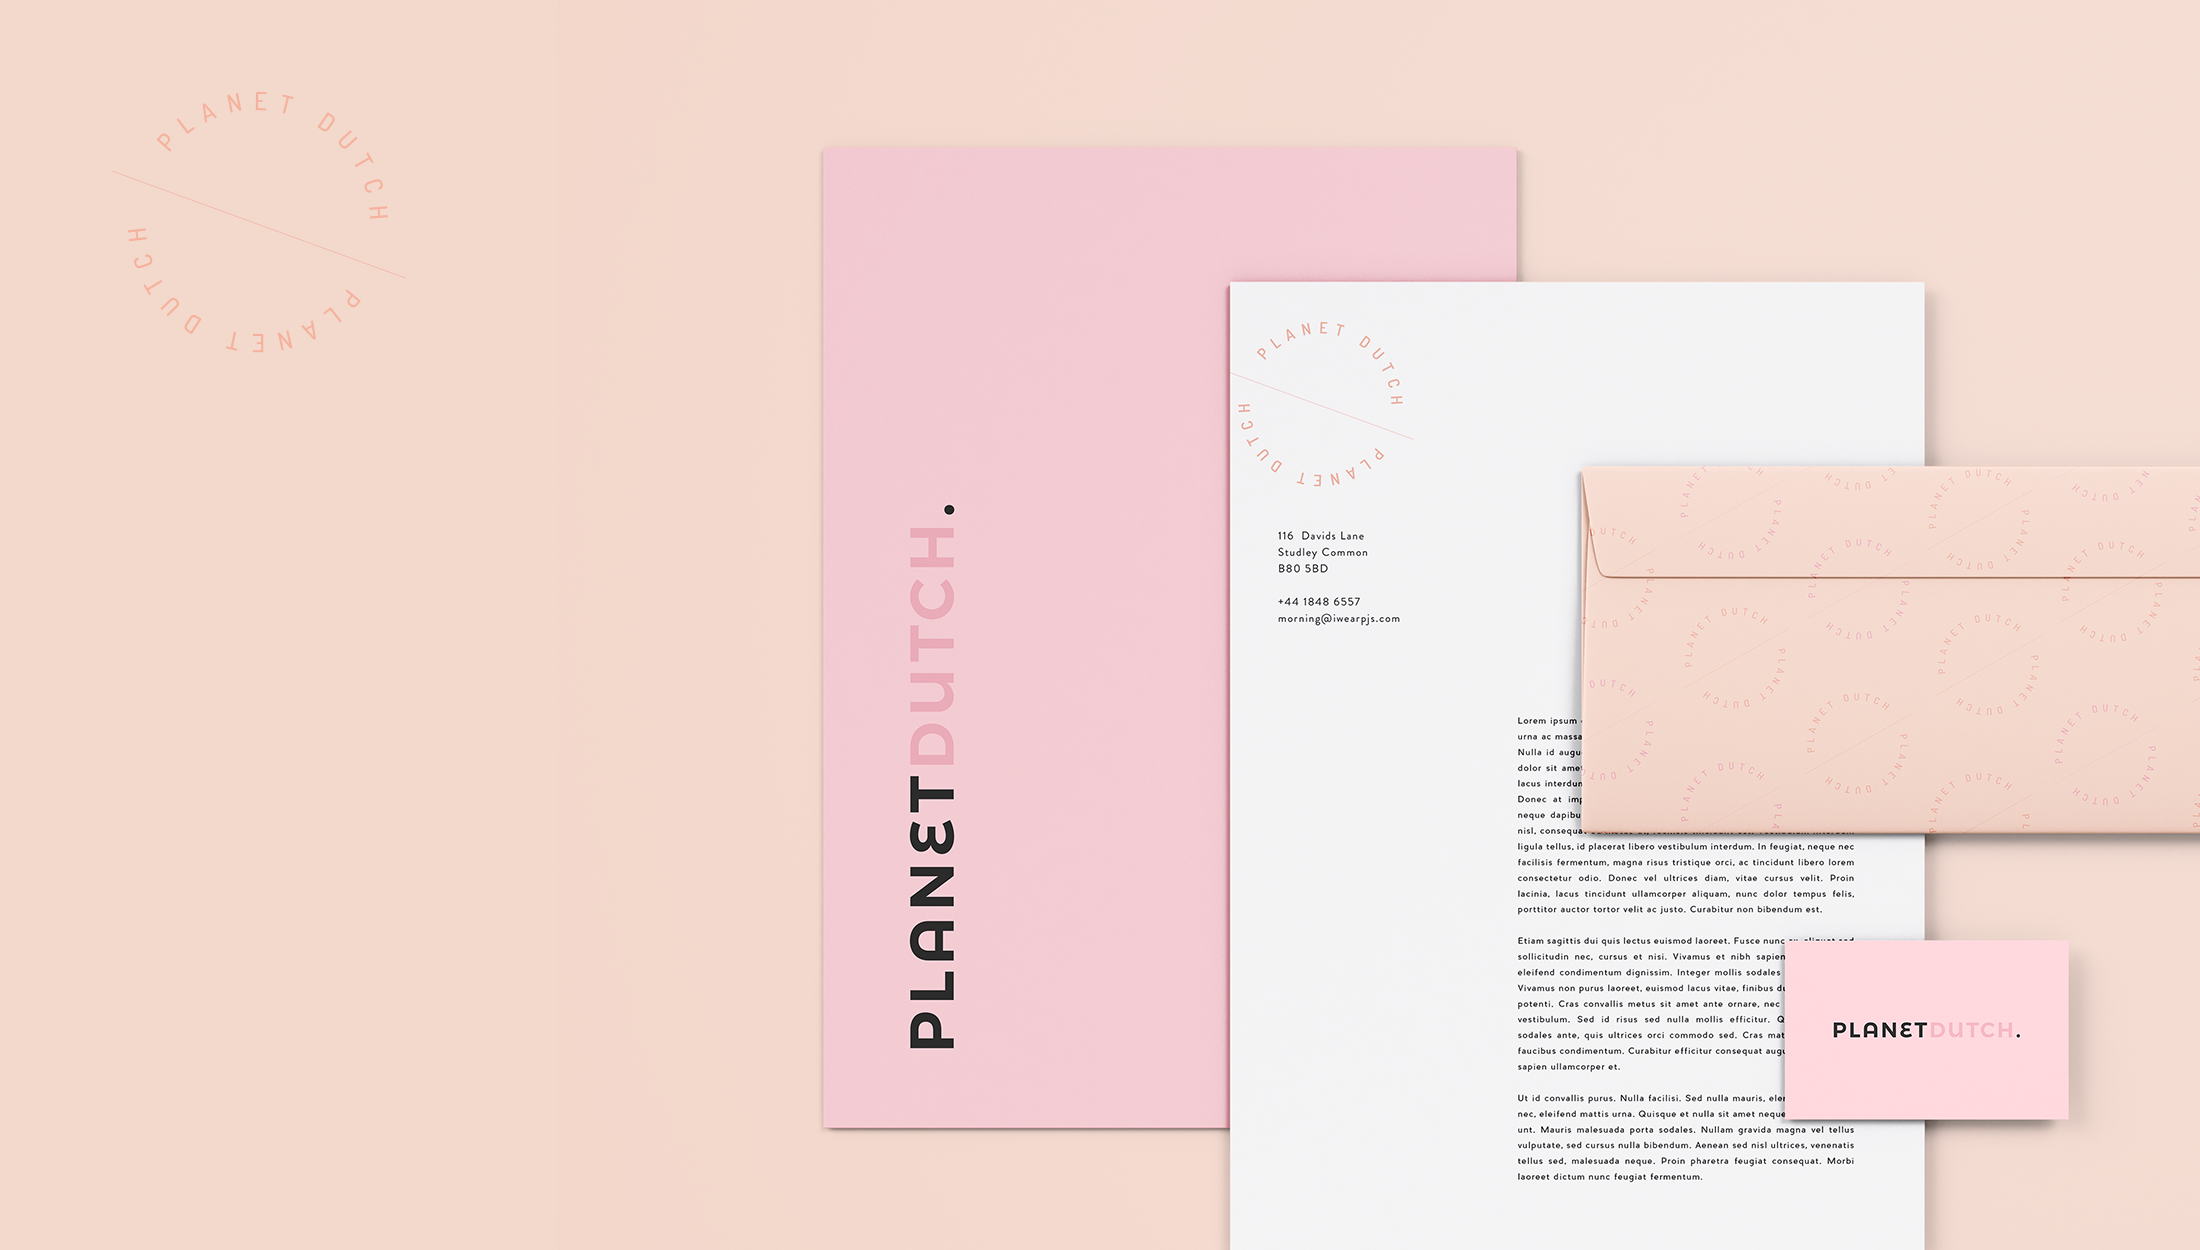 Stationery design for Planet Dutch, a community for expatriate women on how to survive in the Netherlands by learning their language & culture - designed by Wiltshire-based graphic designer, Kaye Huett